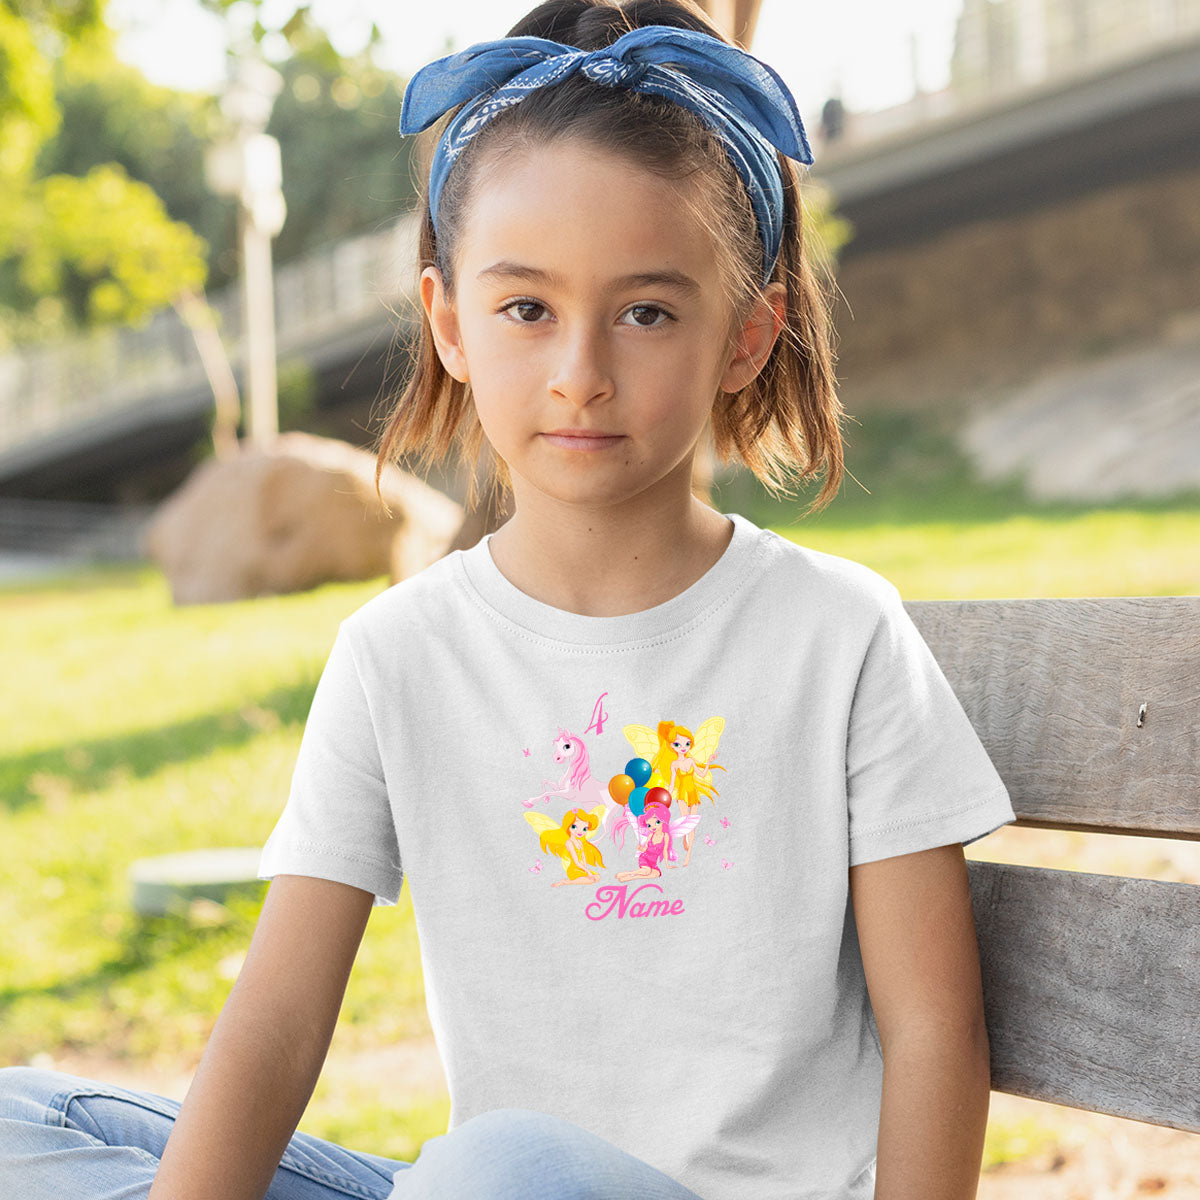 Sprinklecart Colourful Design Printed Birthday Tee | Suitable Birthday Dress for Your Little Queen